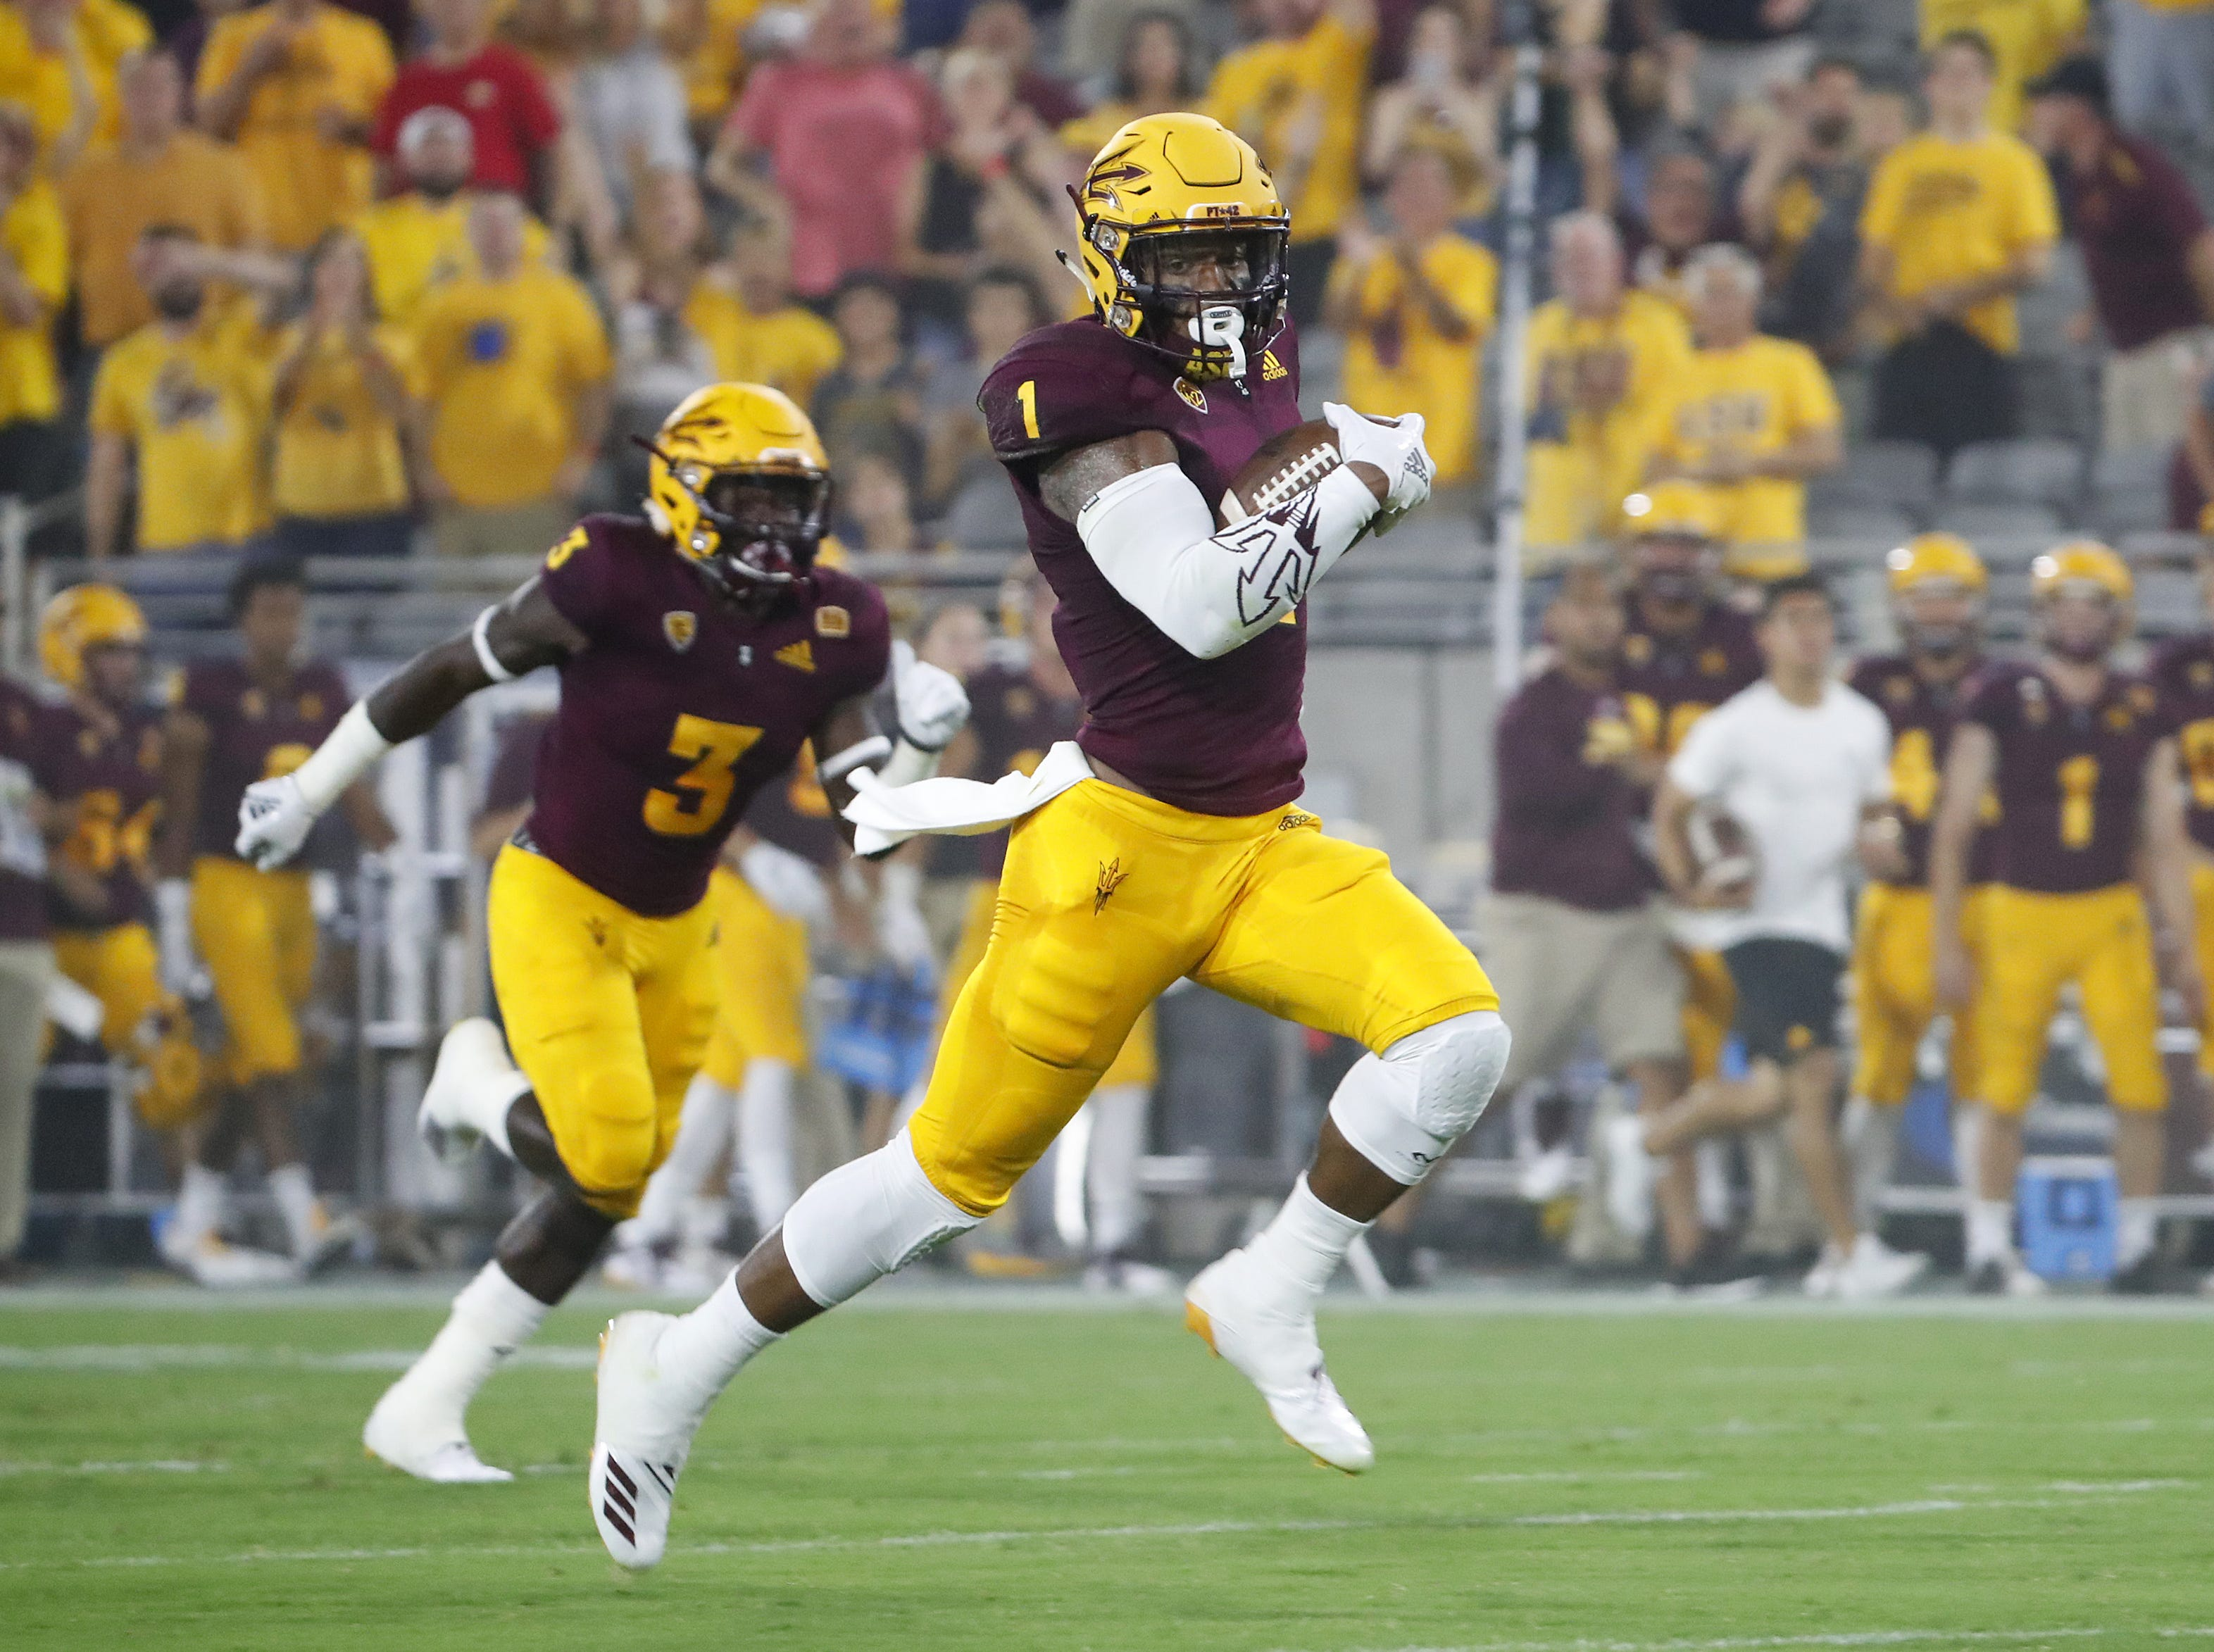 ASU's Arizona State Sun Devils wide receiver N'Keal Harry (1) breaks free for a 58-yard touchdown reception against UTSA Roadrunners in the first quarter at Sun Devil Stadium in Tempe, Ariz. on Sept. 1, 2018.